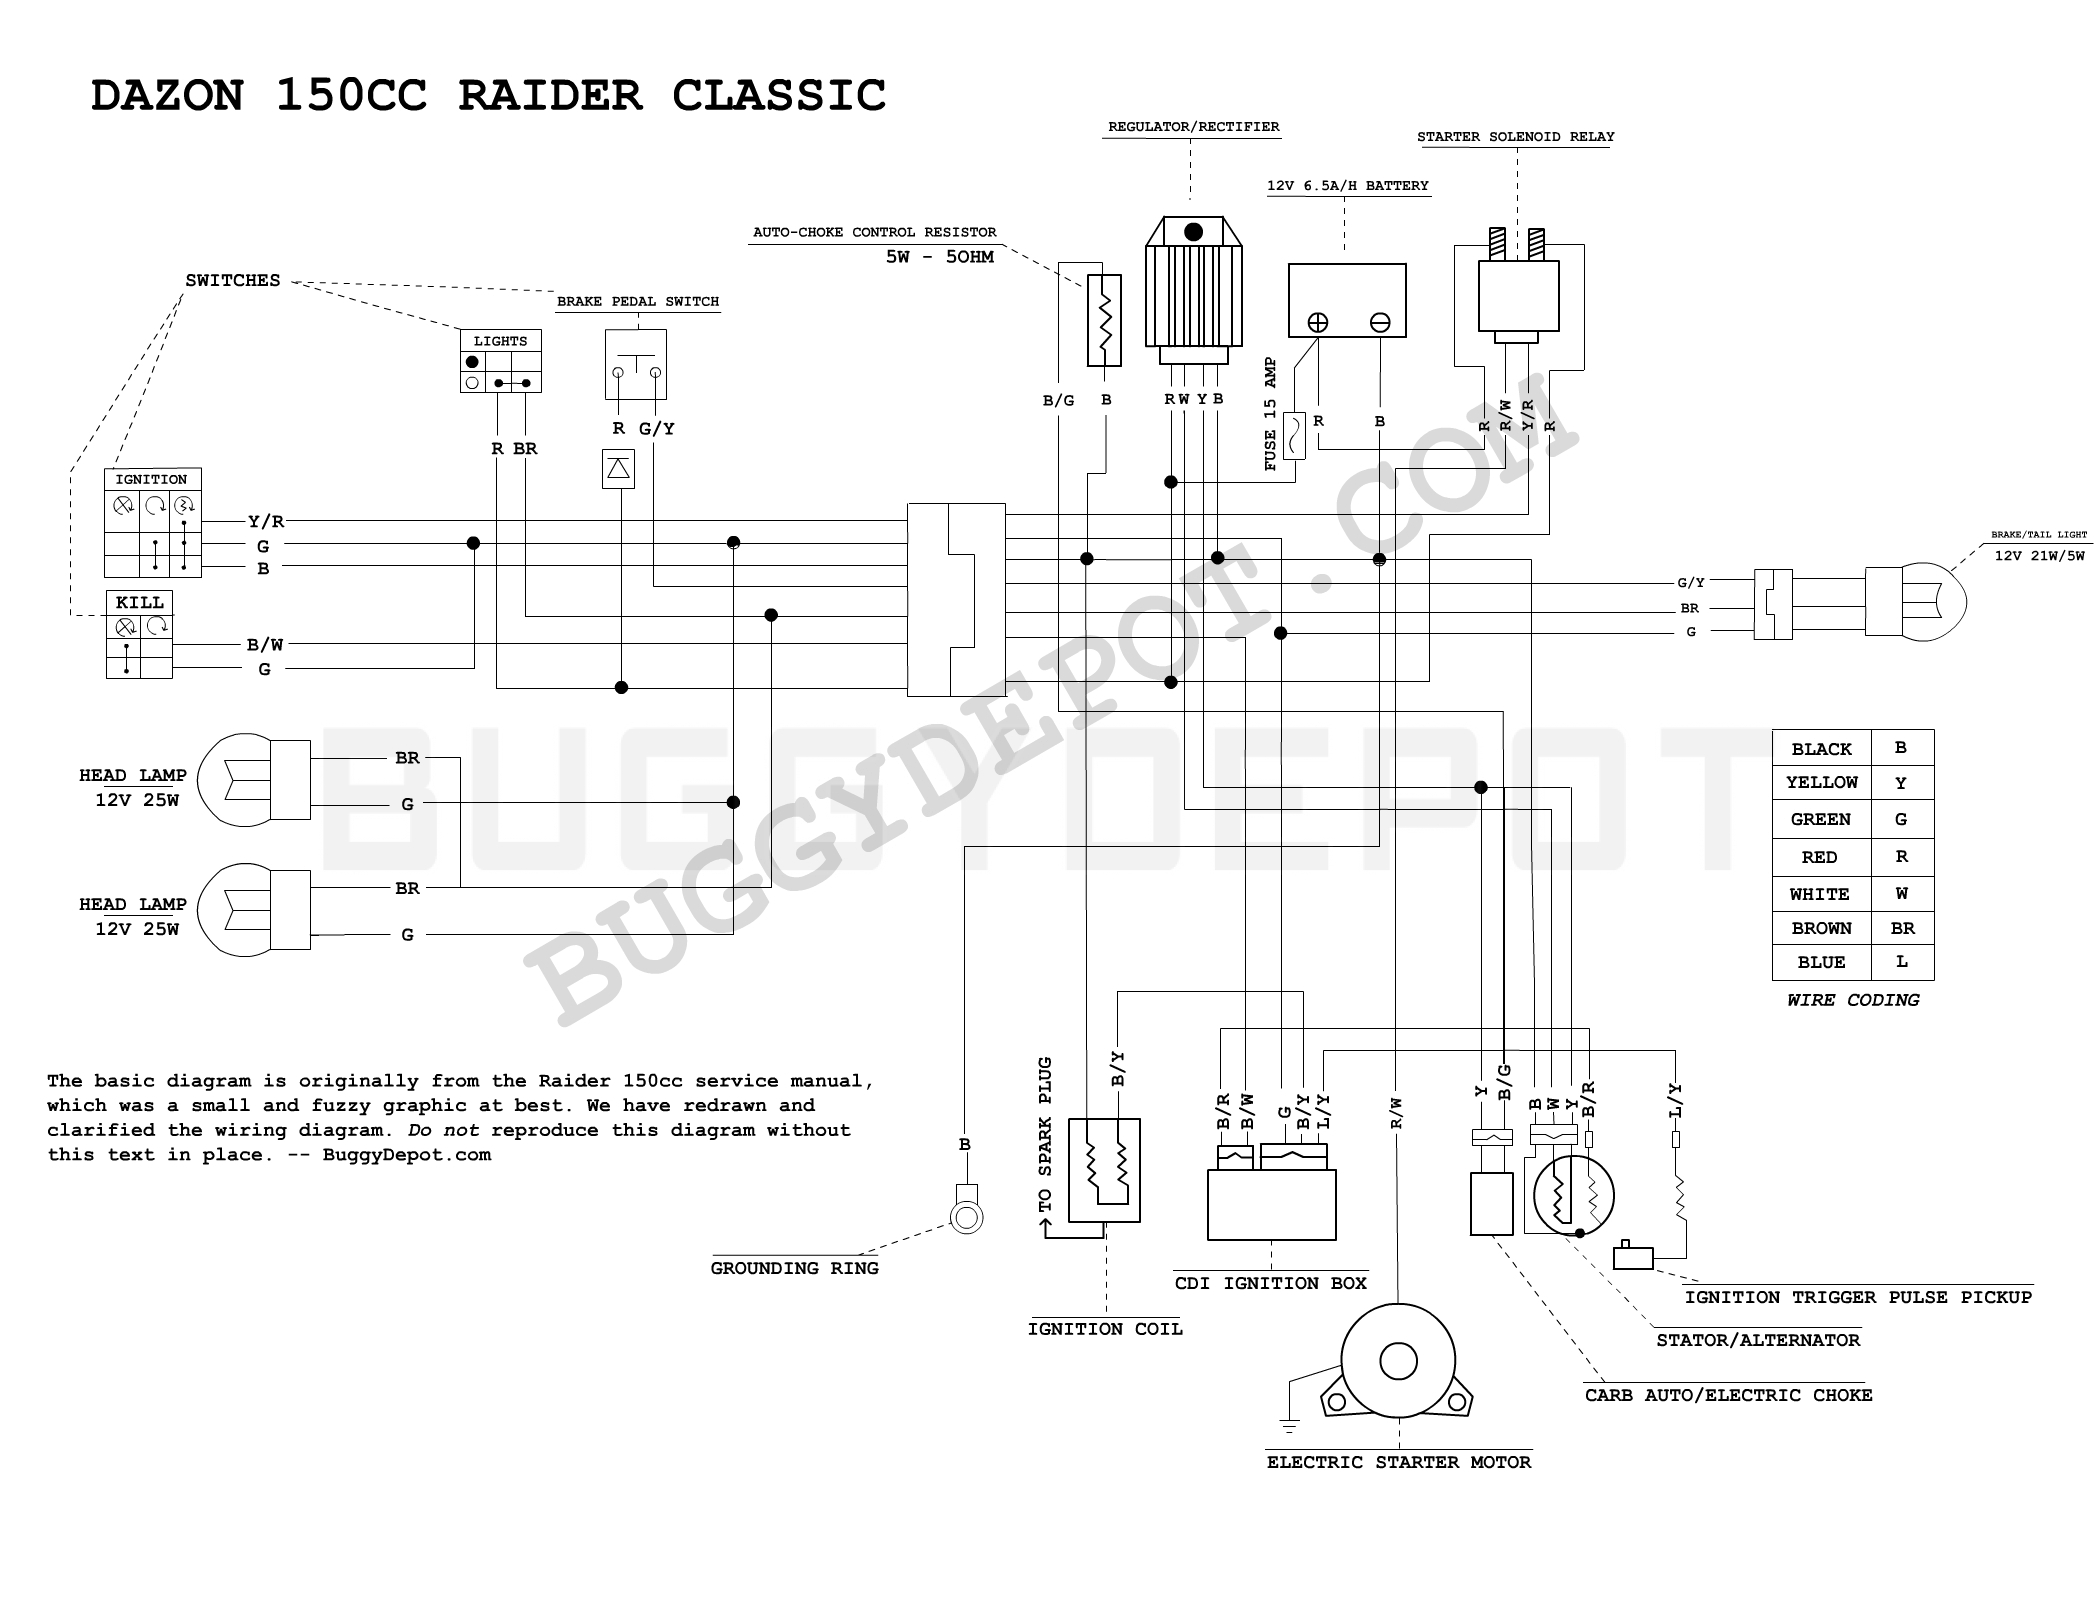 mad dog scooter wiring diagram wiring diagram gp  mad dog wiring diagram wiring library mad dog scooter wiring diagram